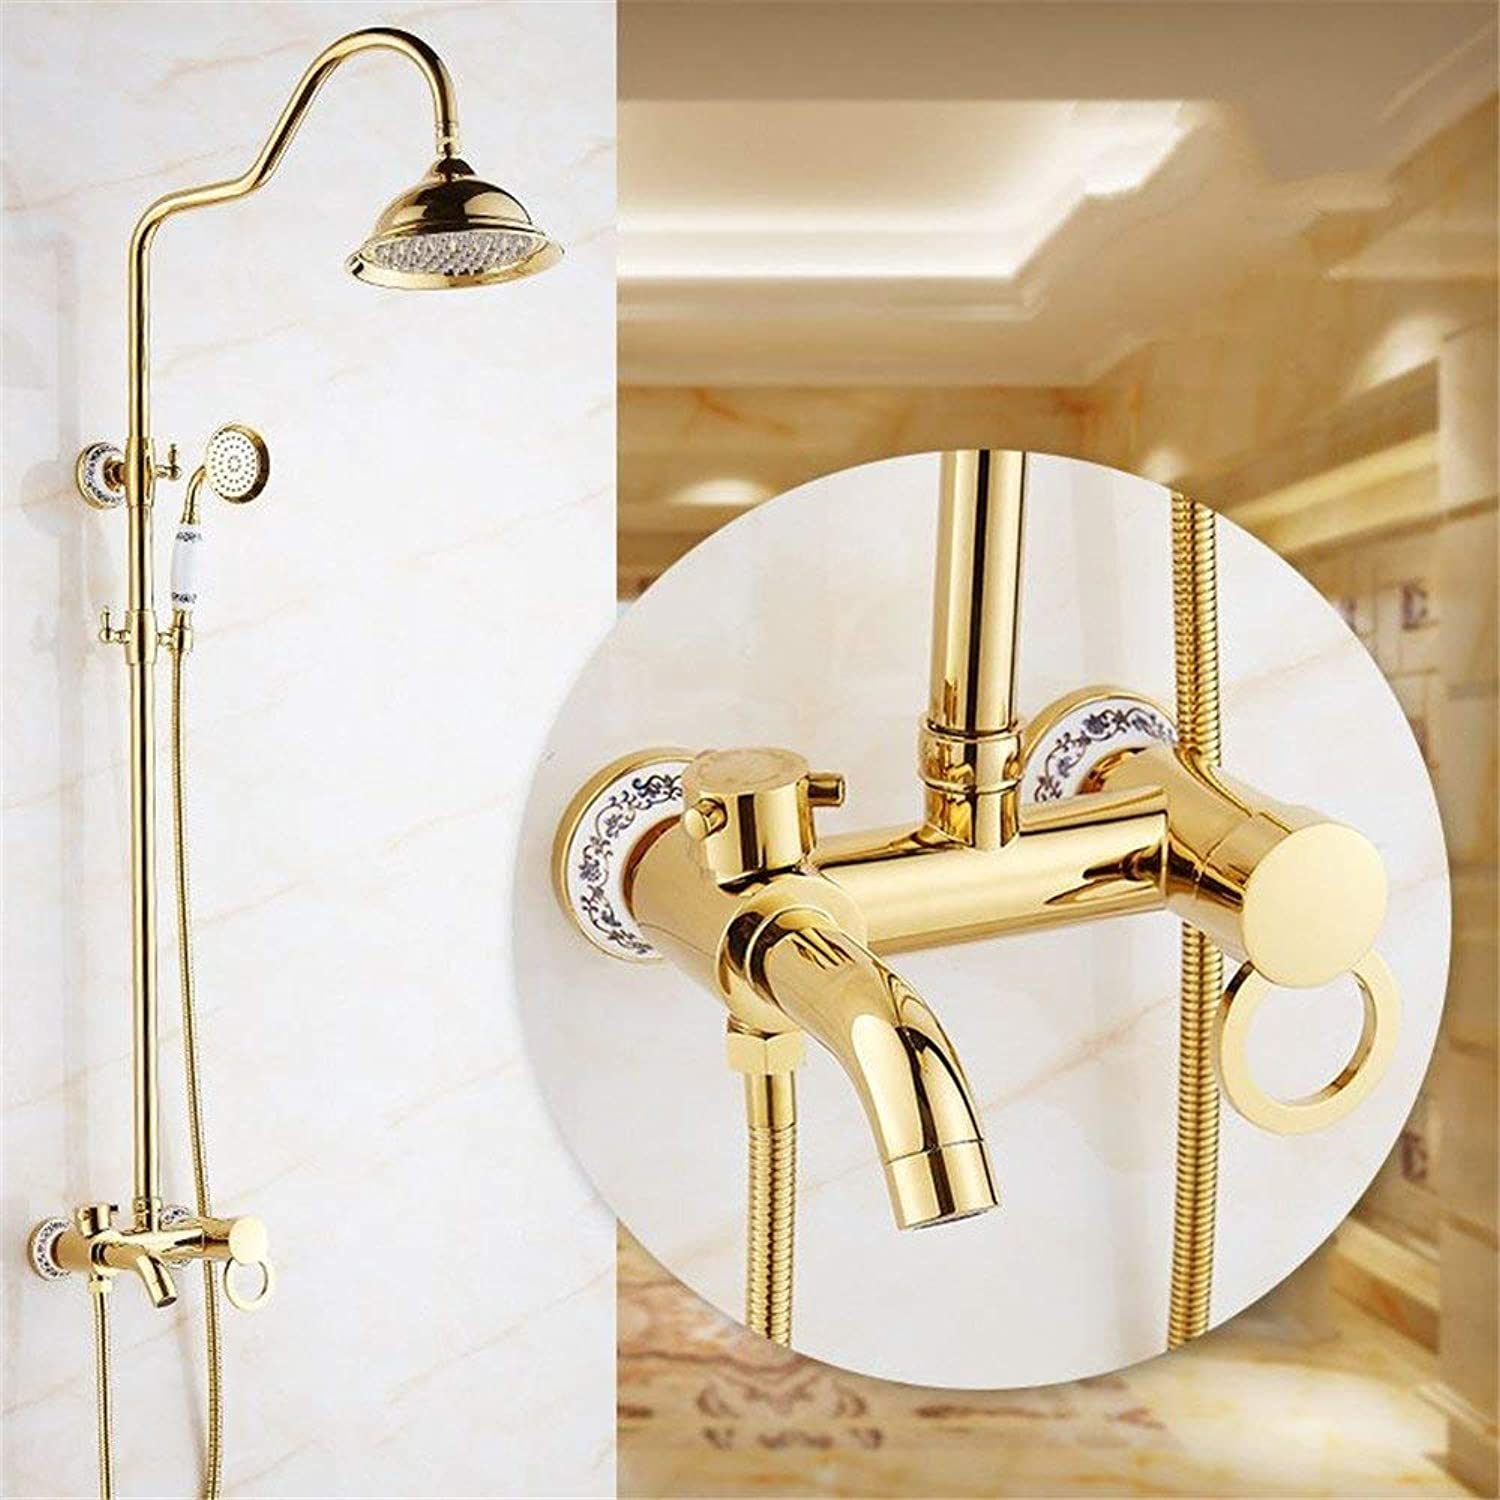 Parliament gold of Glass sprinklers Shower Costume Full Wall of Copper Shower Head Handheld Shower Sprinkler System with Turbocharger, B